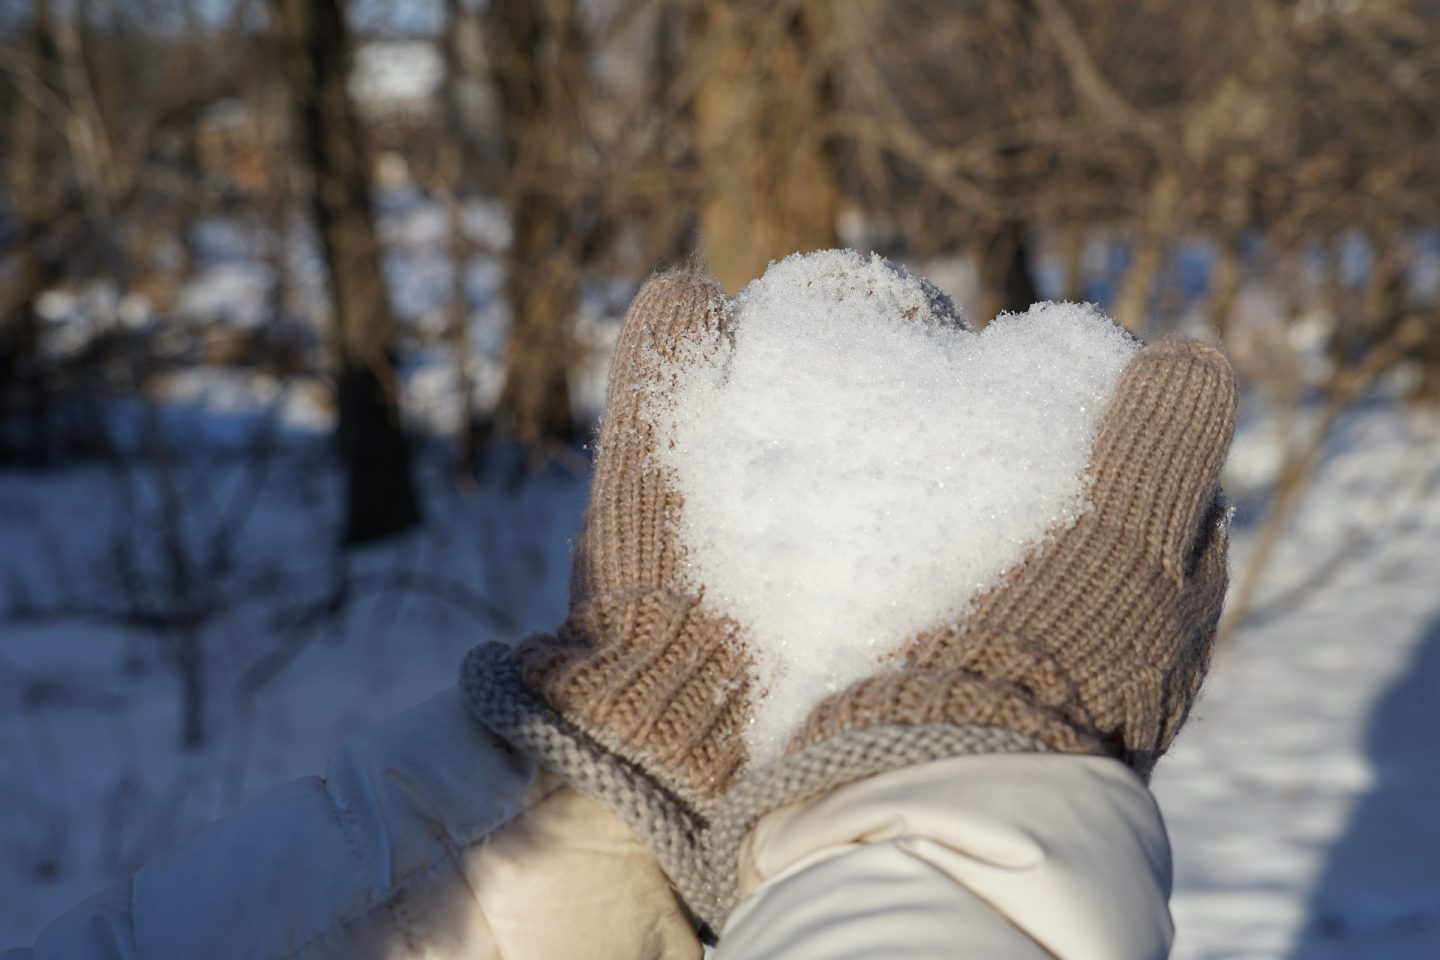 A pair of hands in brown gloves holding snow in the shape of a heart